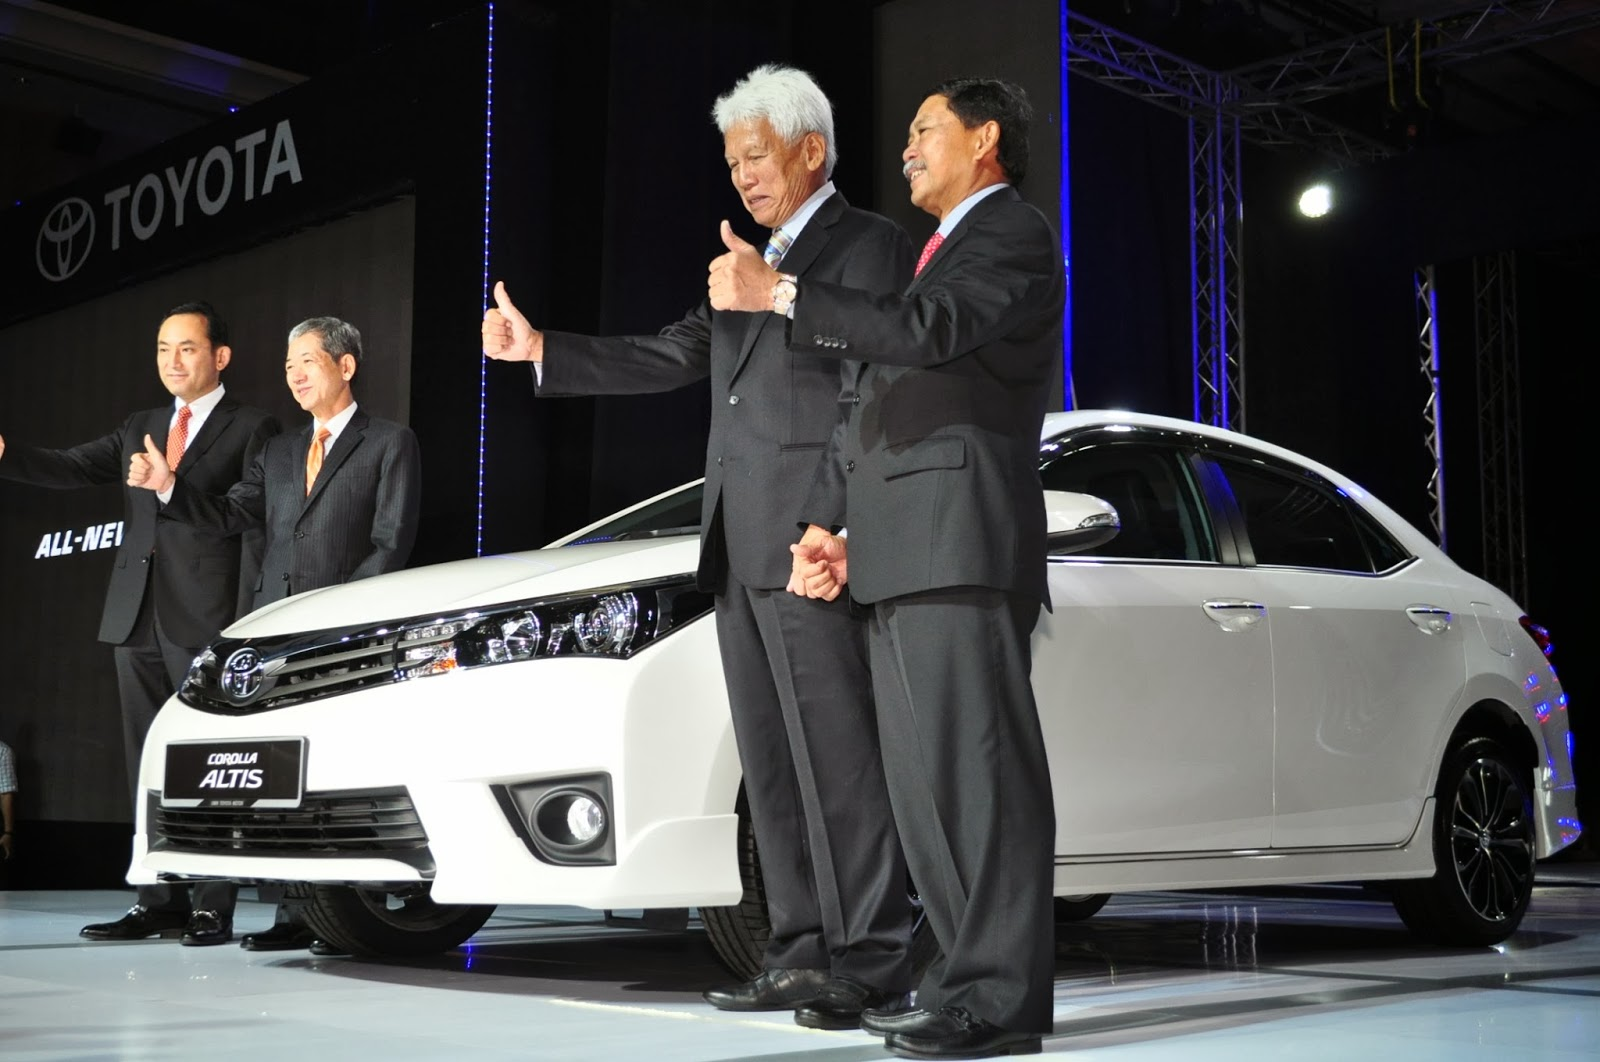 Umw toyota launched the all new altis price starts from rm114 000